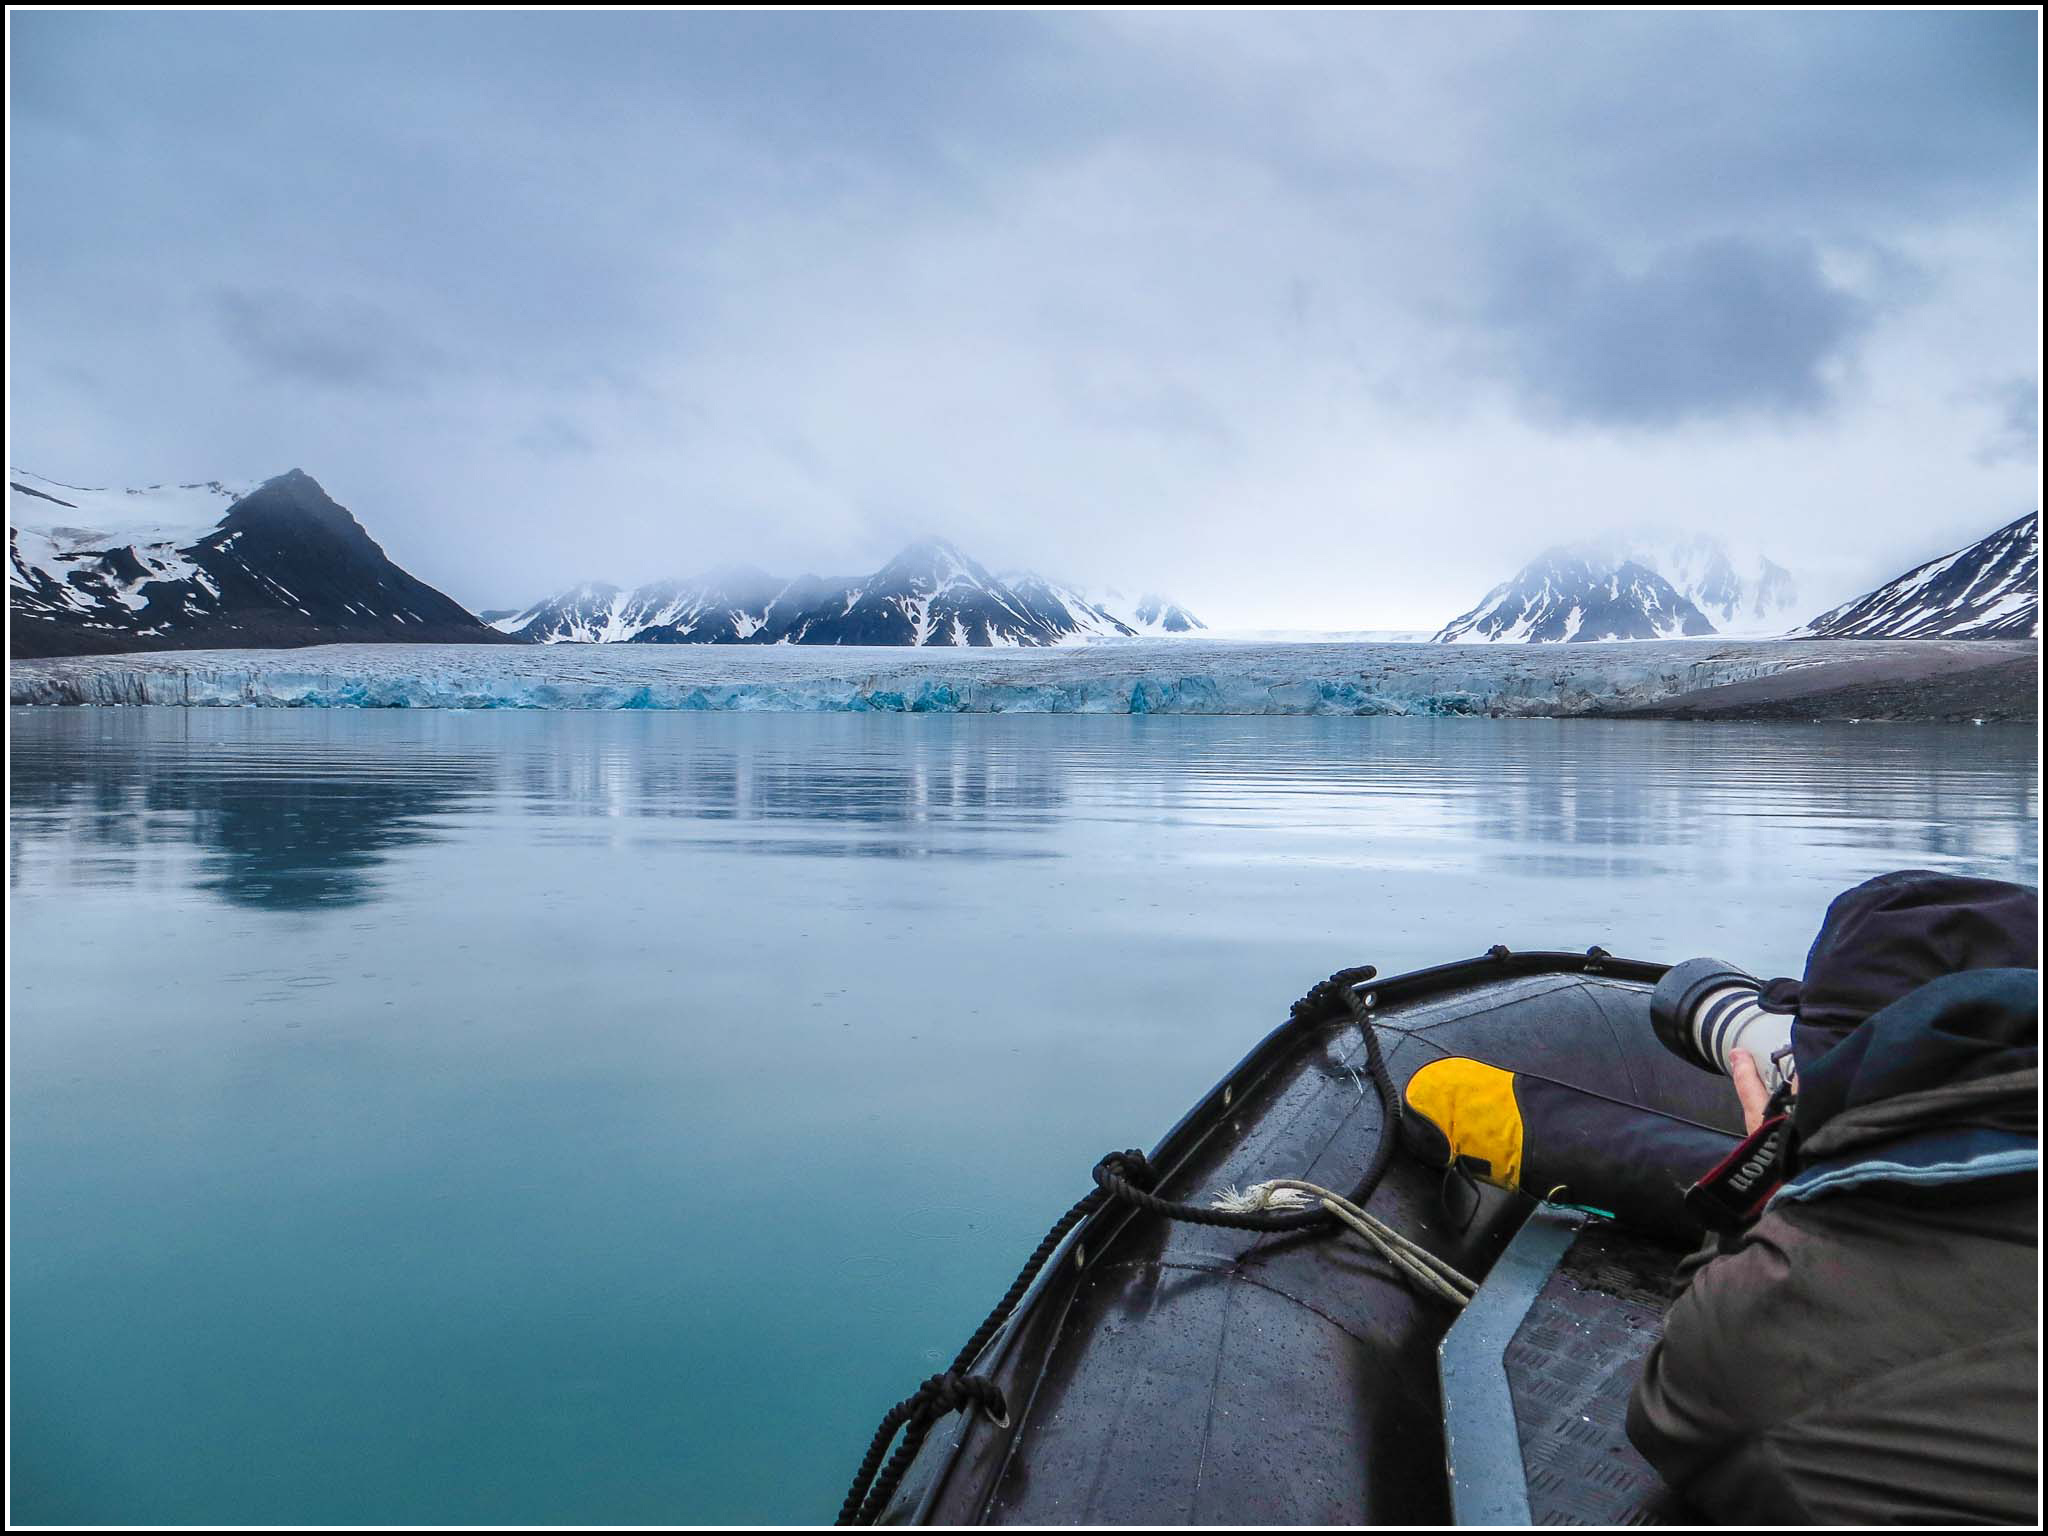 A glacier view from the water | © Smudge 9000/Flickr